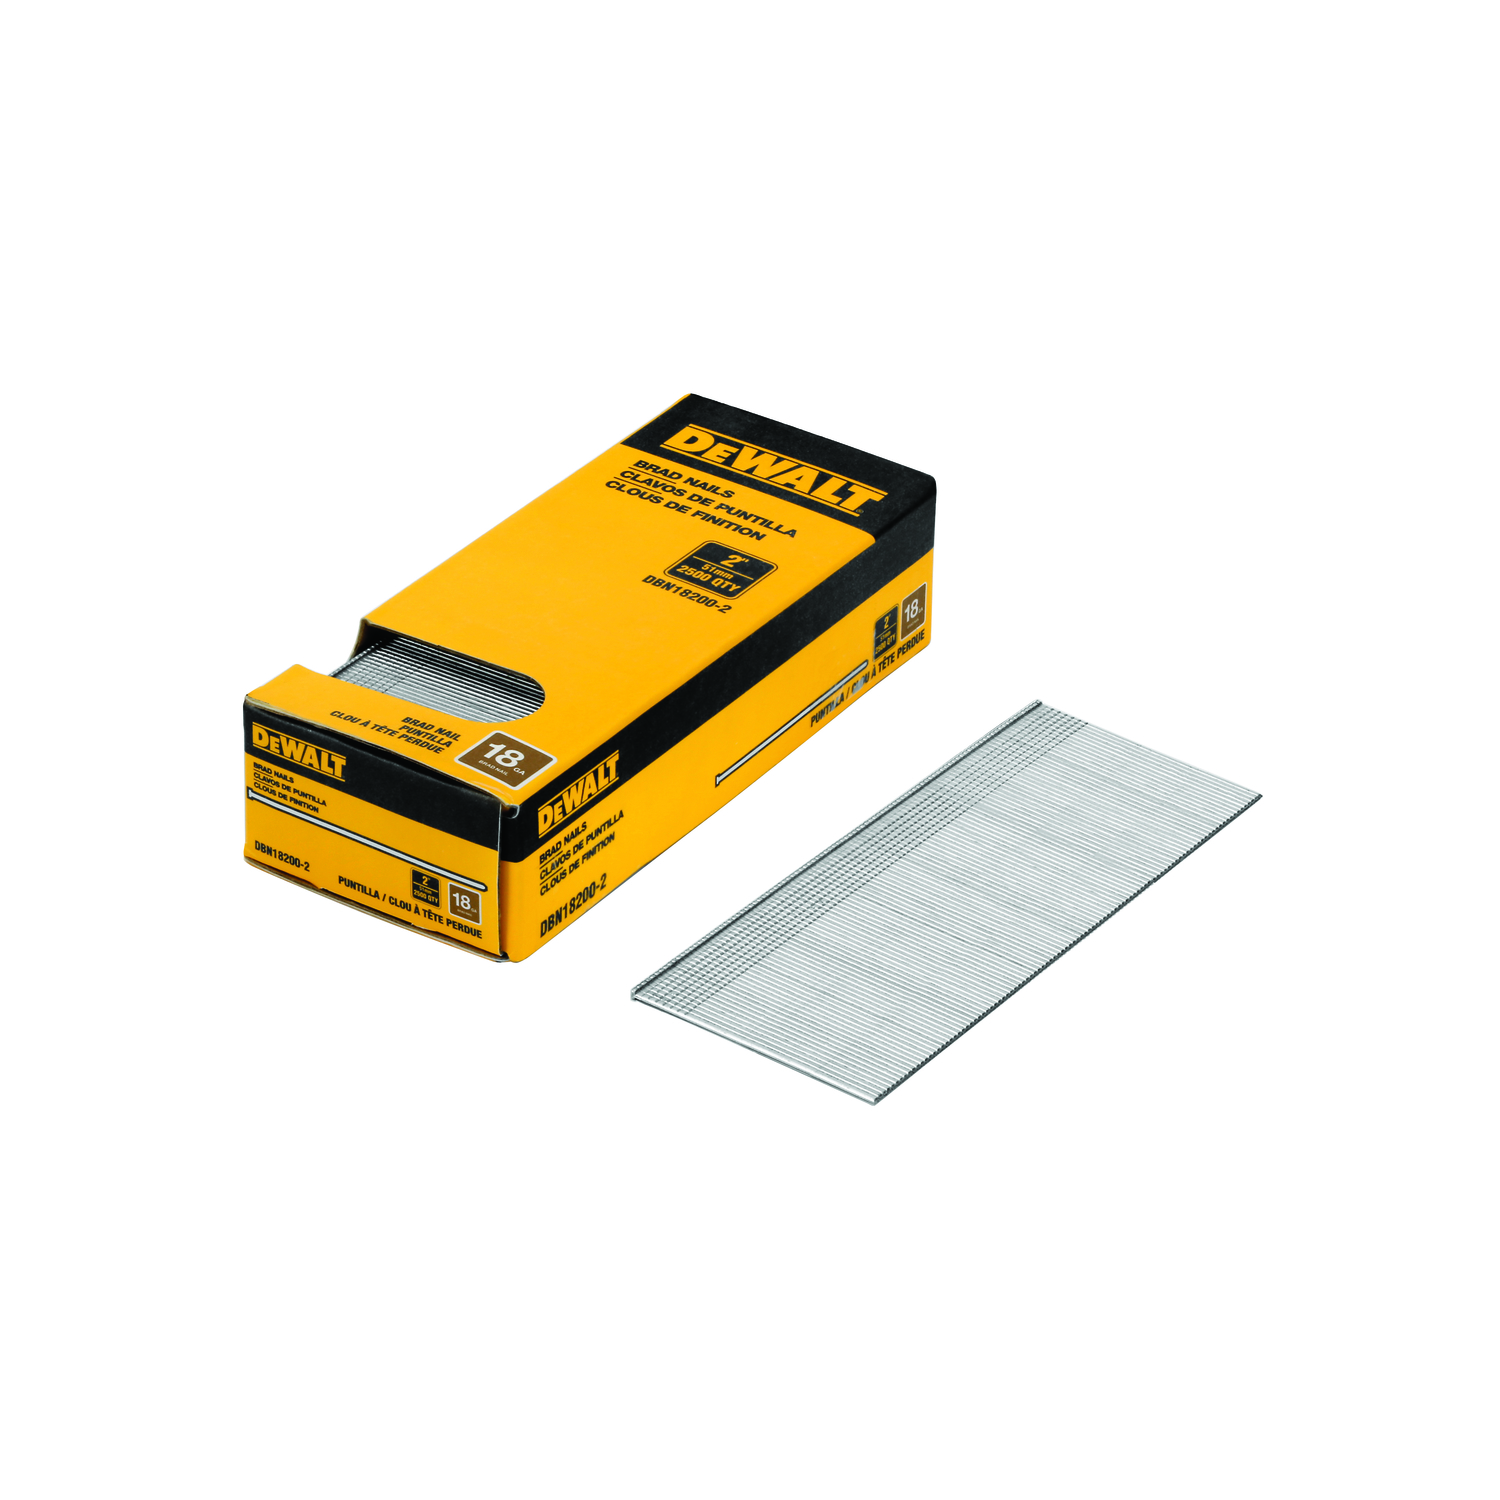 DeWalt 2 in. 18 Ga. Straight Strip Brad Nails Smooth Shank 2500 pk